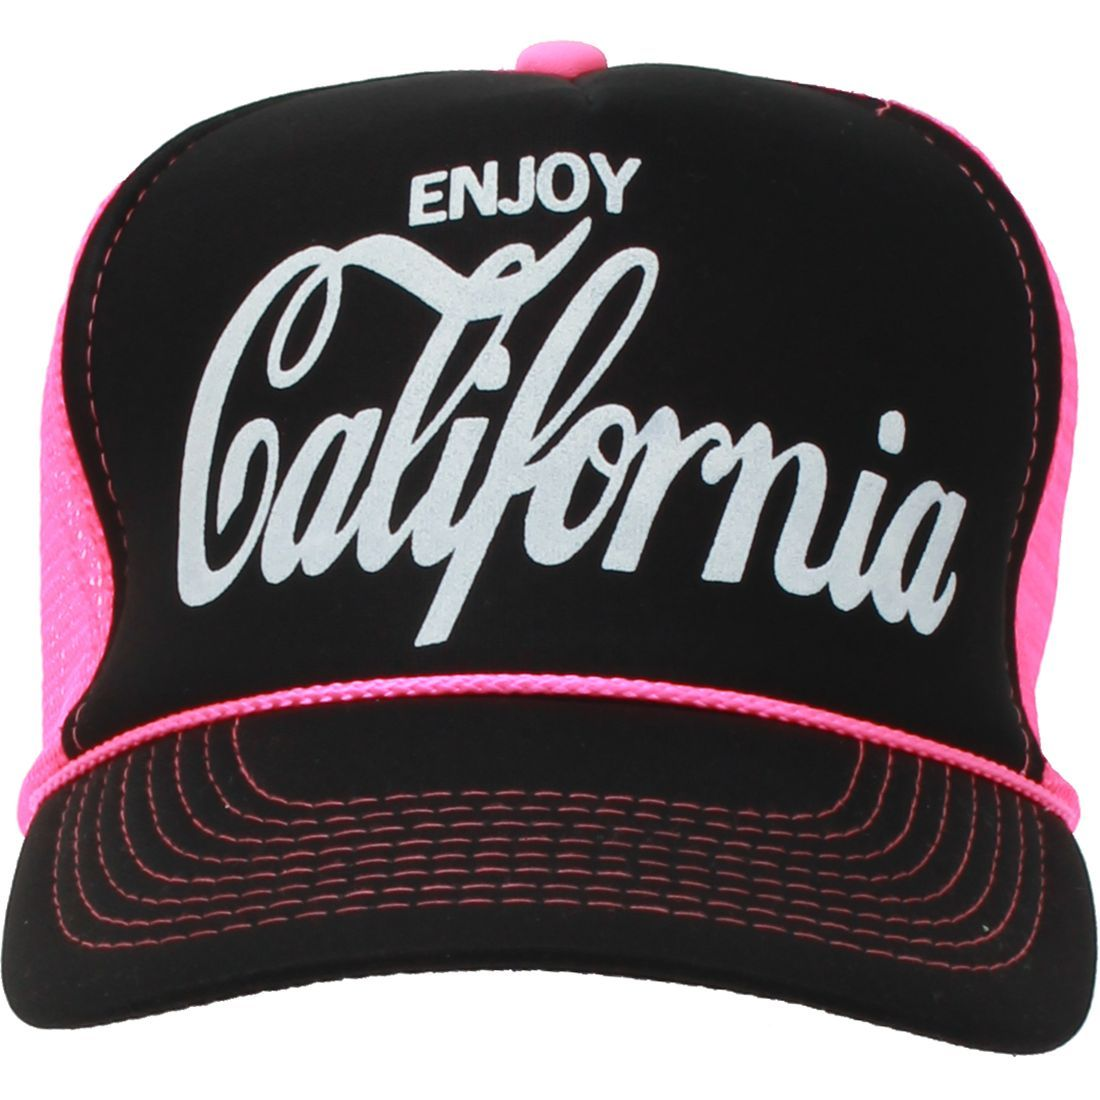 1cad89a6d4d California Republic Cola Snapback Hat - White Print Neon Pink Curve Bill -  Black Crown